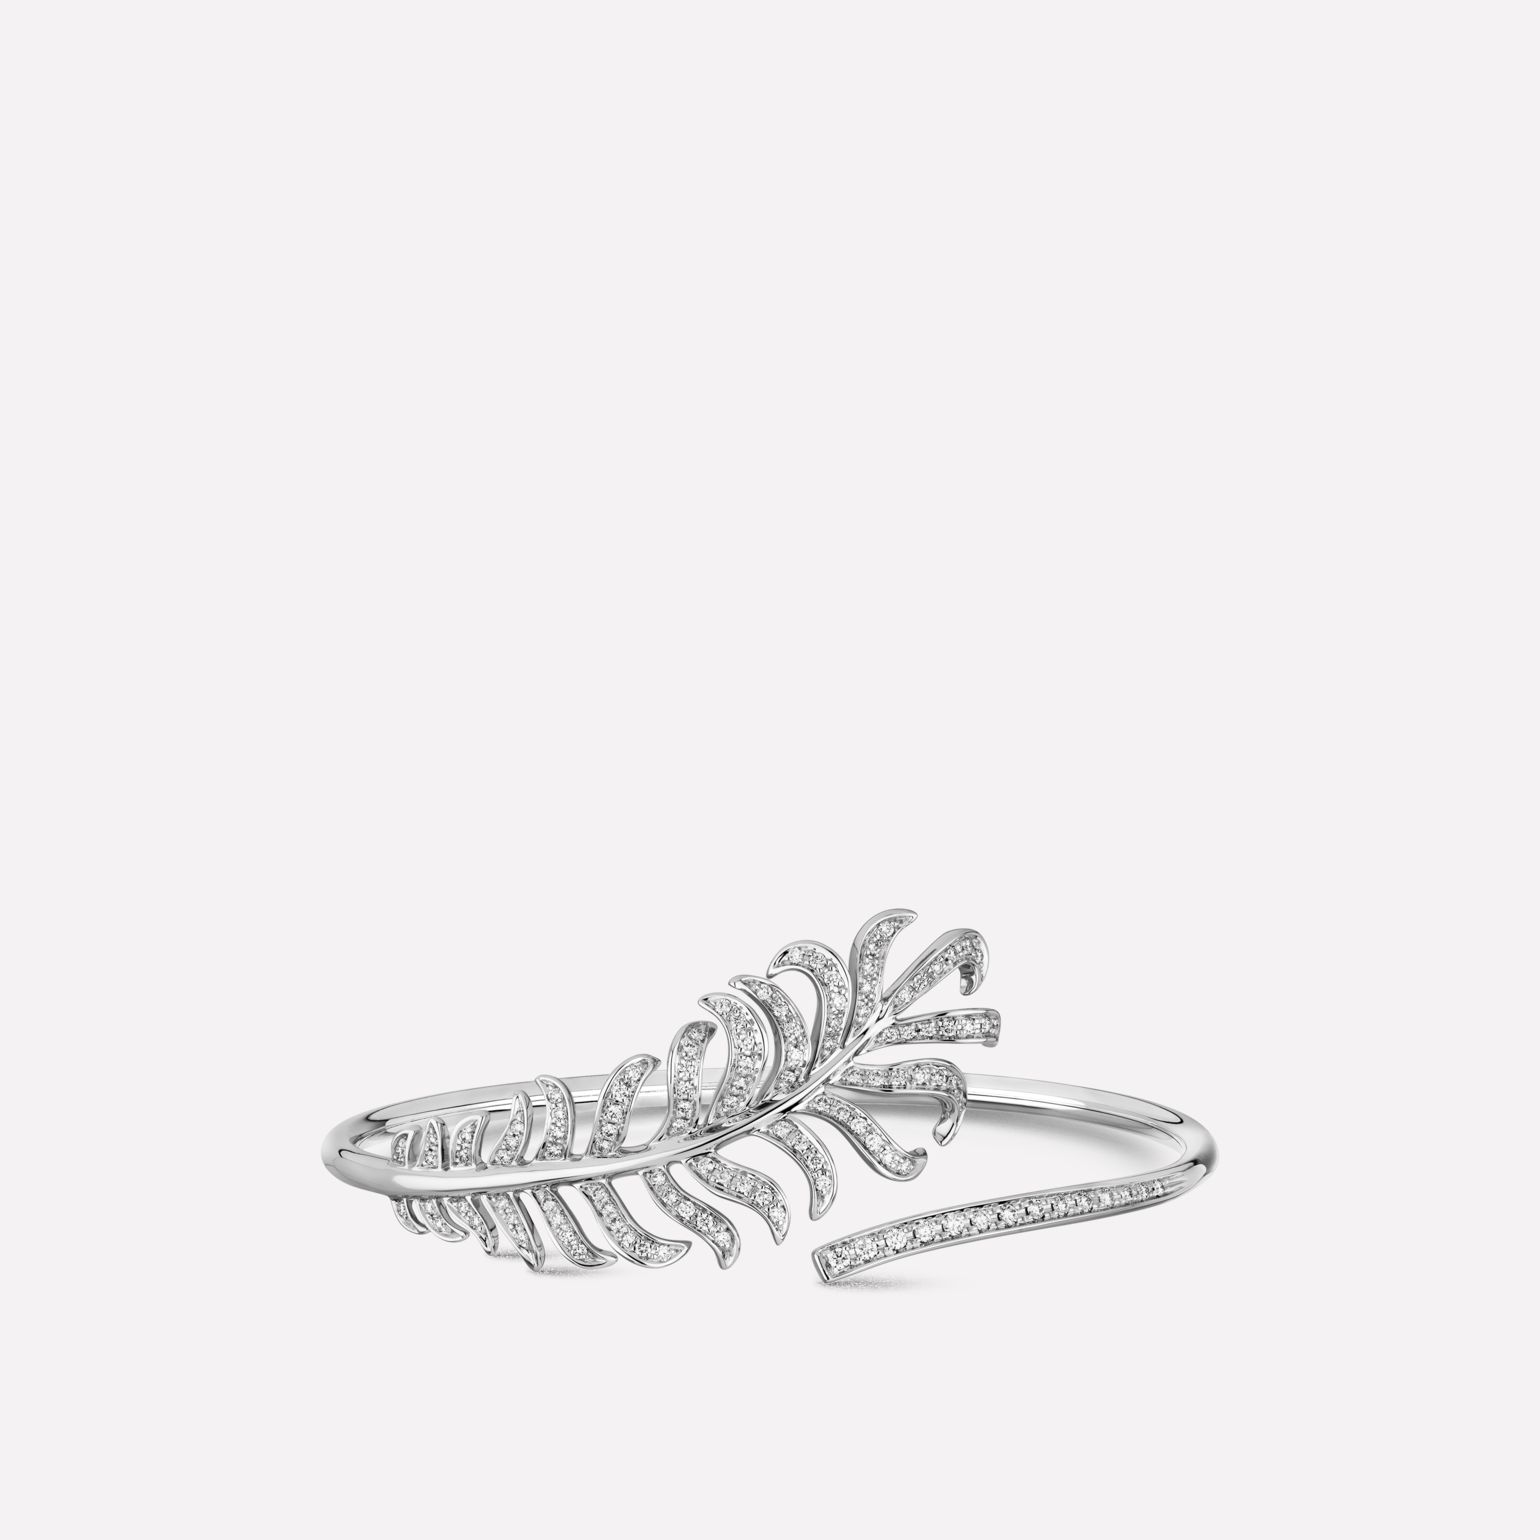 Plume de CHANEL Bracelet Plume bracelet in 18K white gold and diamonds